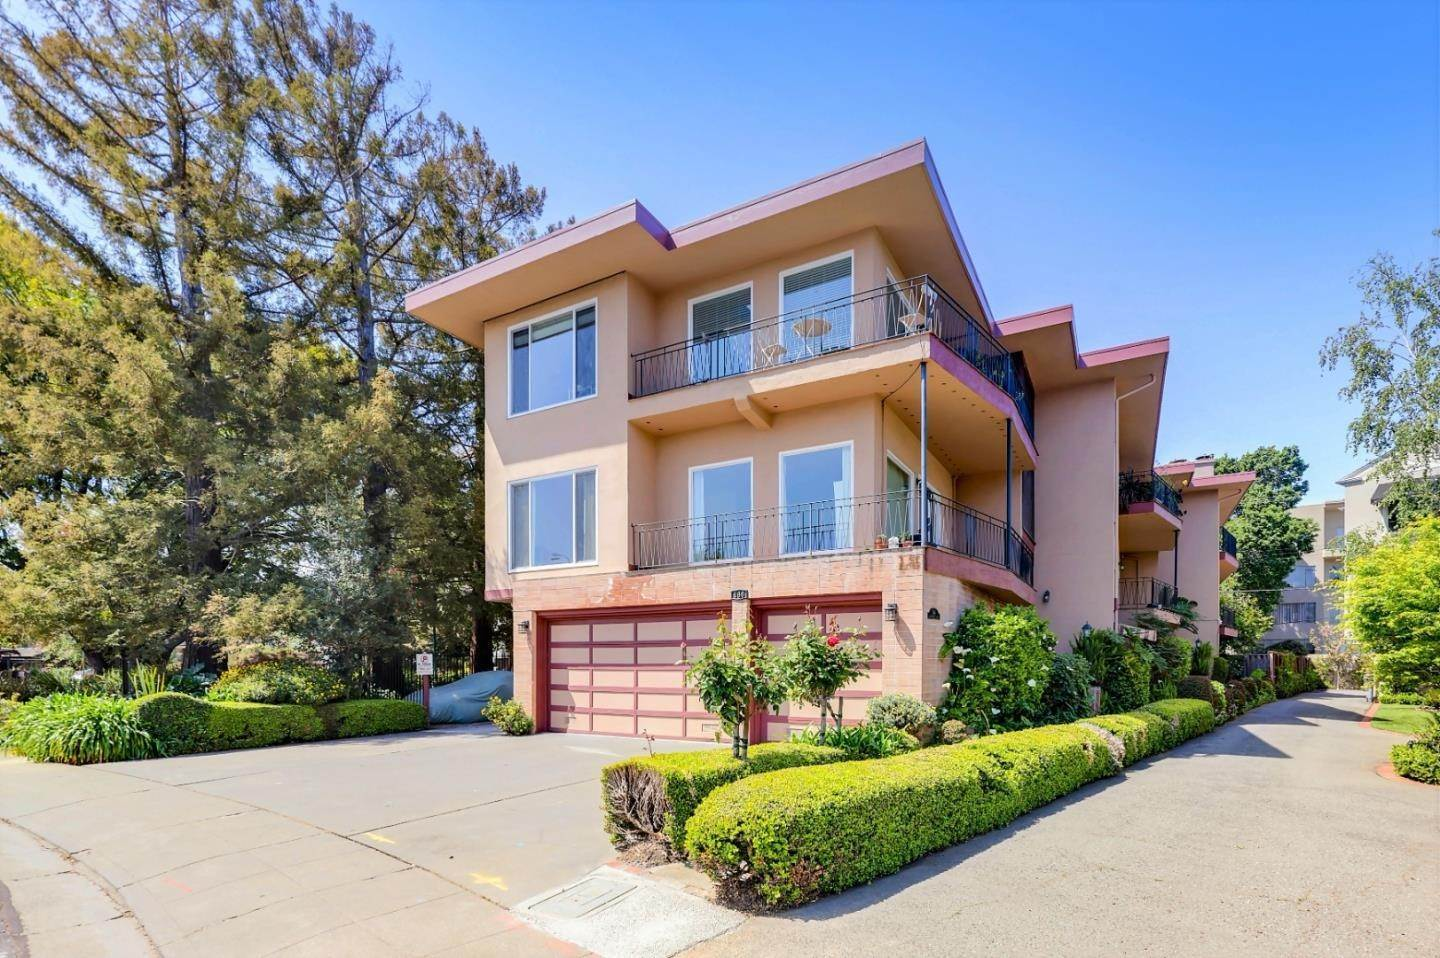 Multi-Family Homes for Sale at 146 Dartmouth Road San Mateo, California 94402 United States